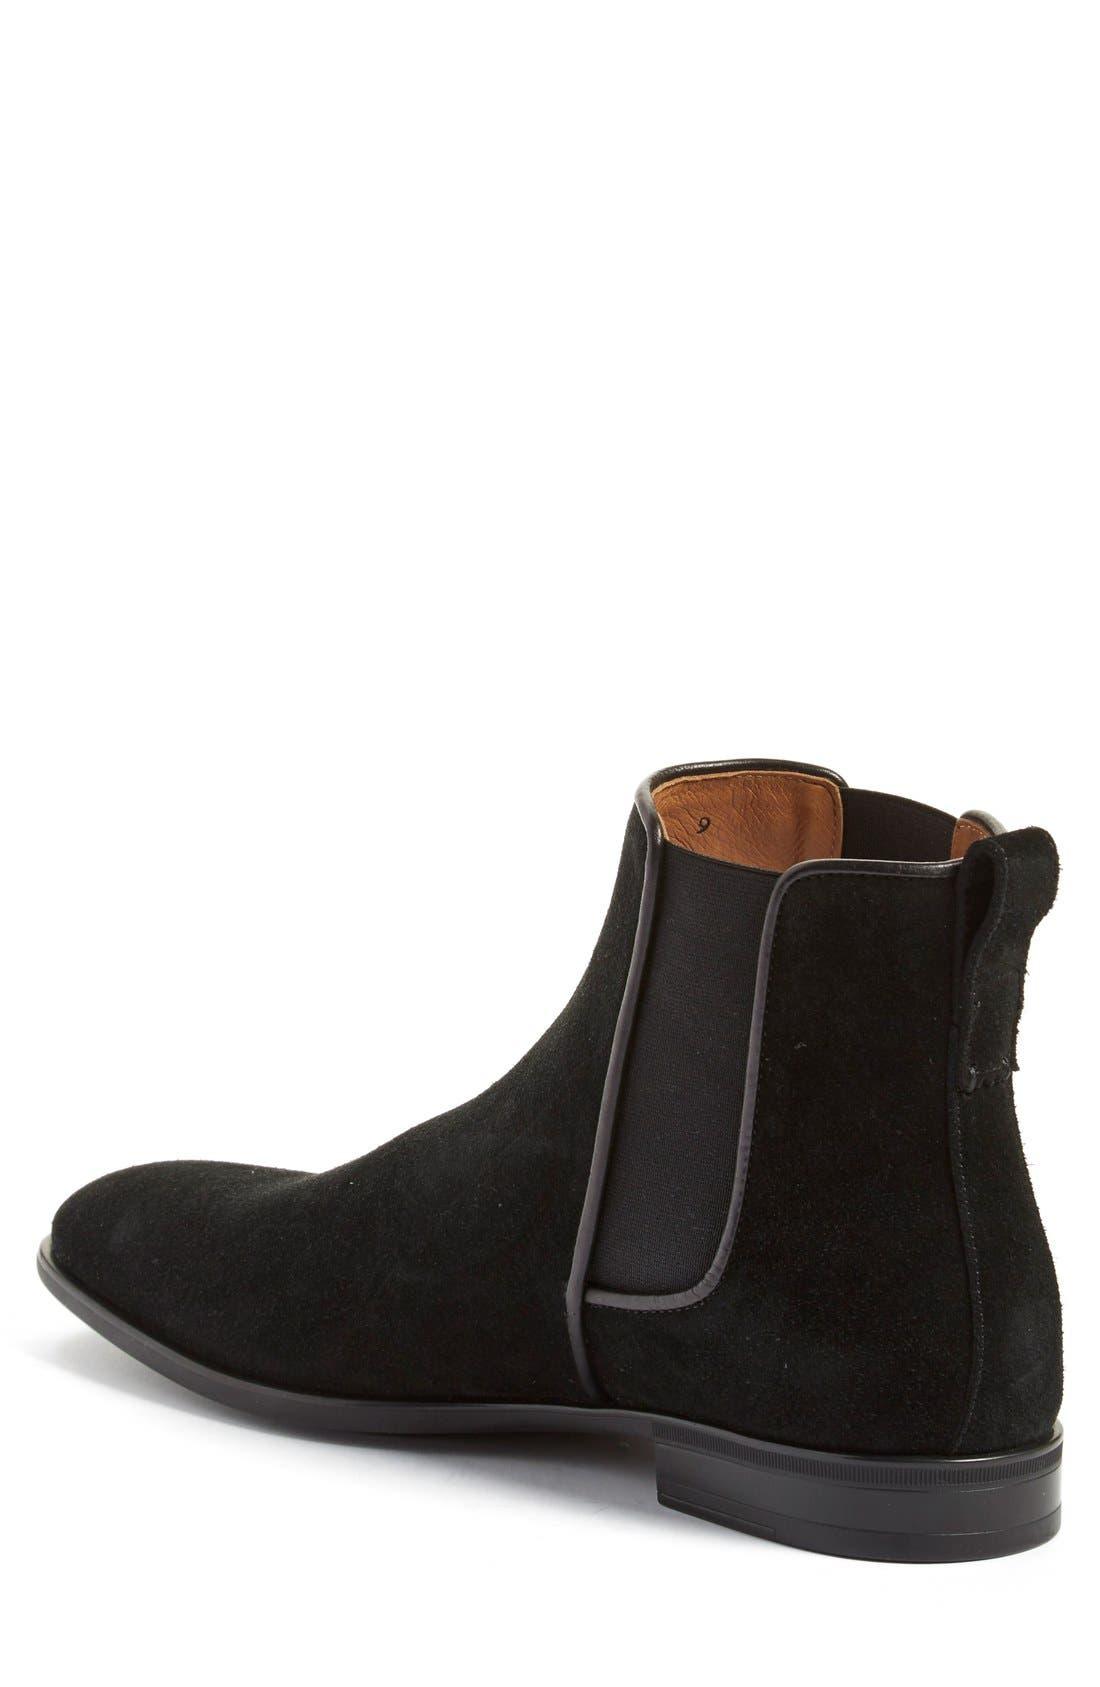 'Adrian' Weatherproof Chelsea Boot,                             Alternate thumbnail 2, color,                             Black Suede